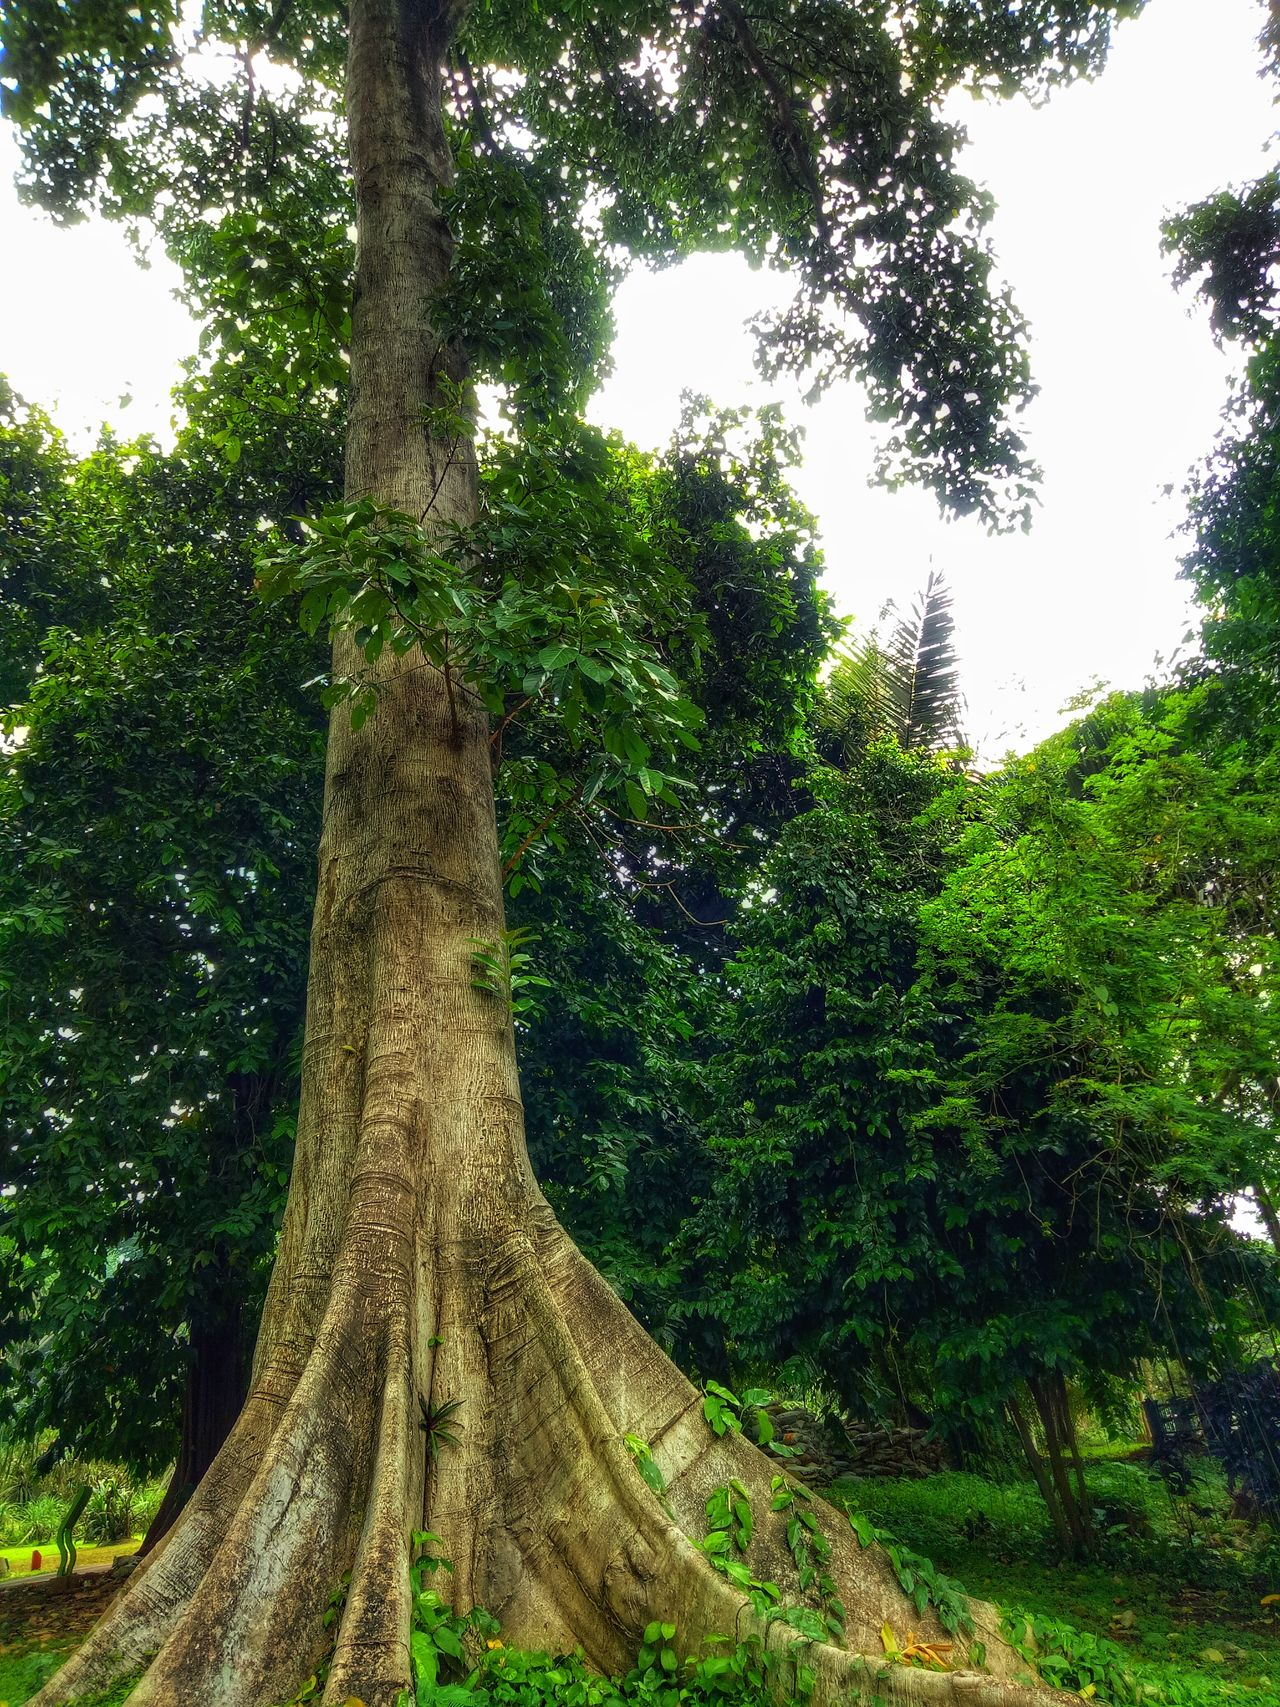 Tree Nature Low Angle View Growth No People Green Color Tree Trunk Tranquility Sky Outdoors Day Beauty In Nature Huge